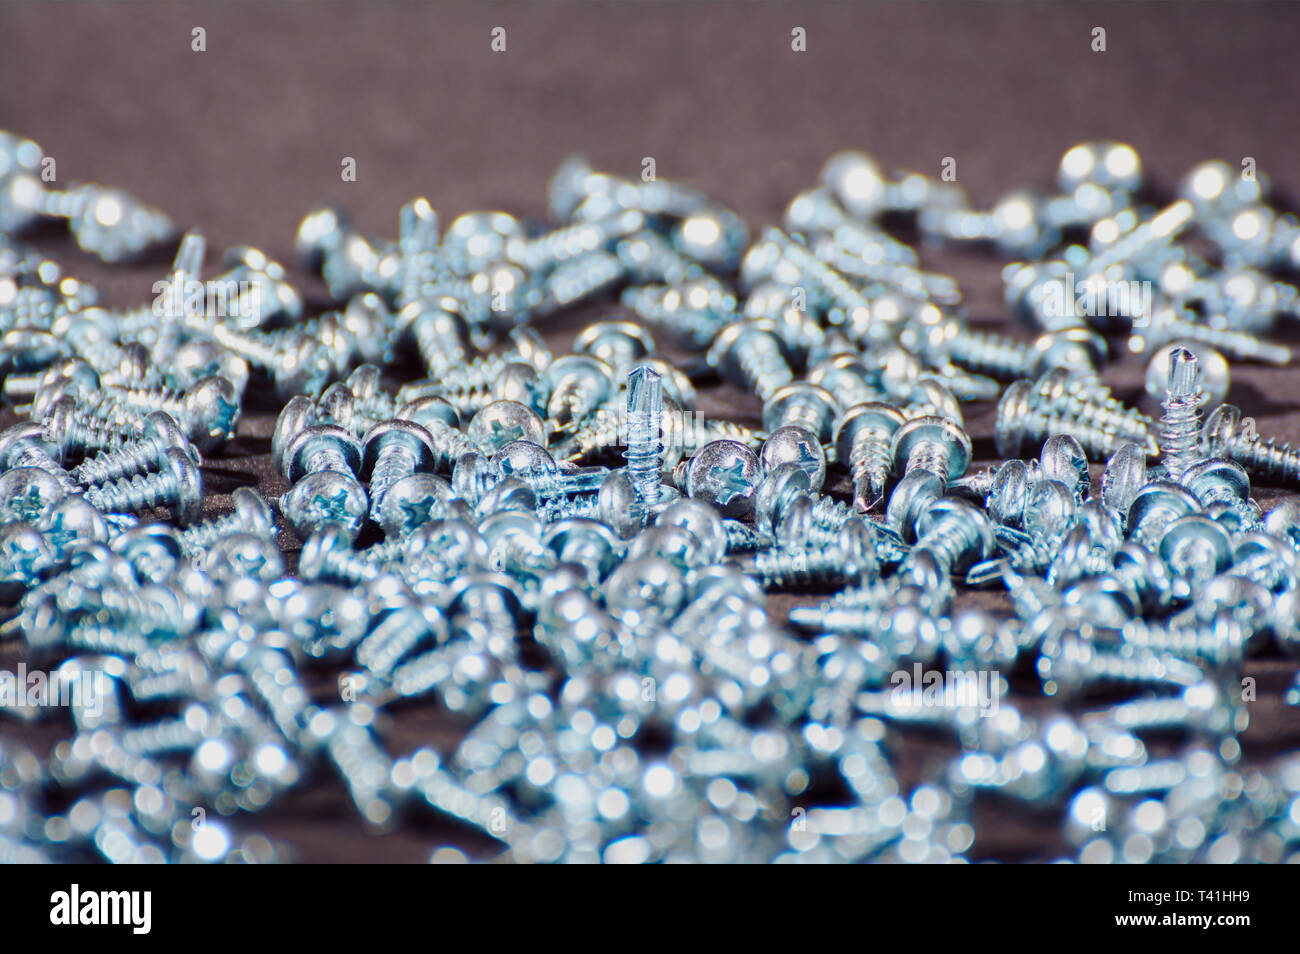 self-tapping screws on black background close up - Stock Image